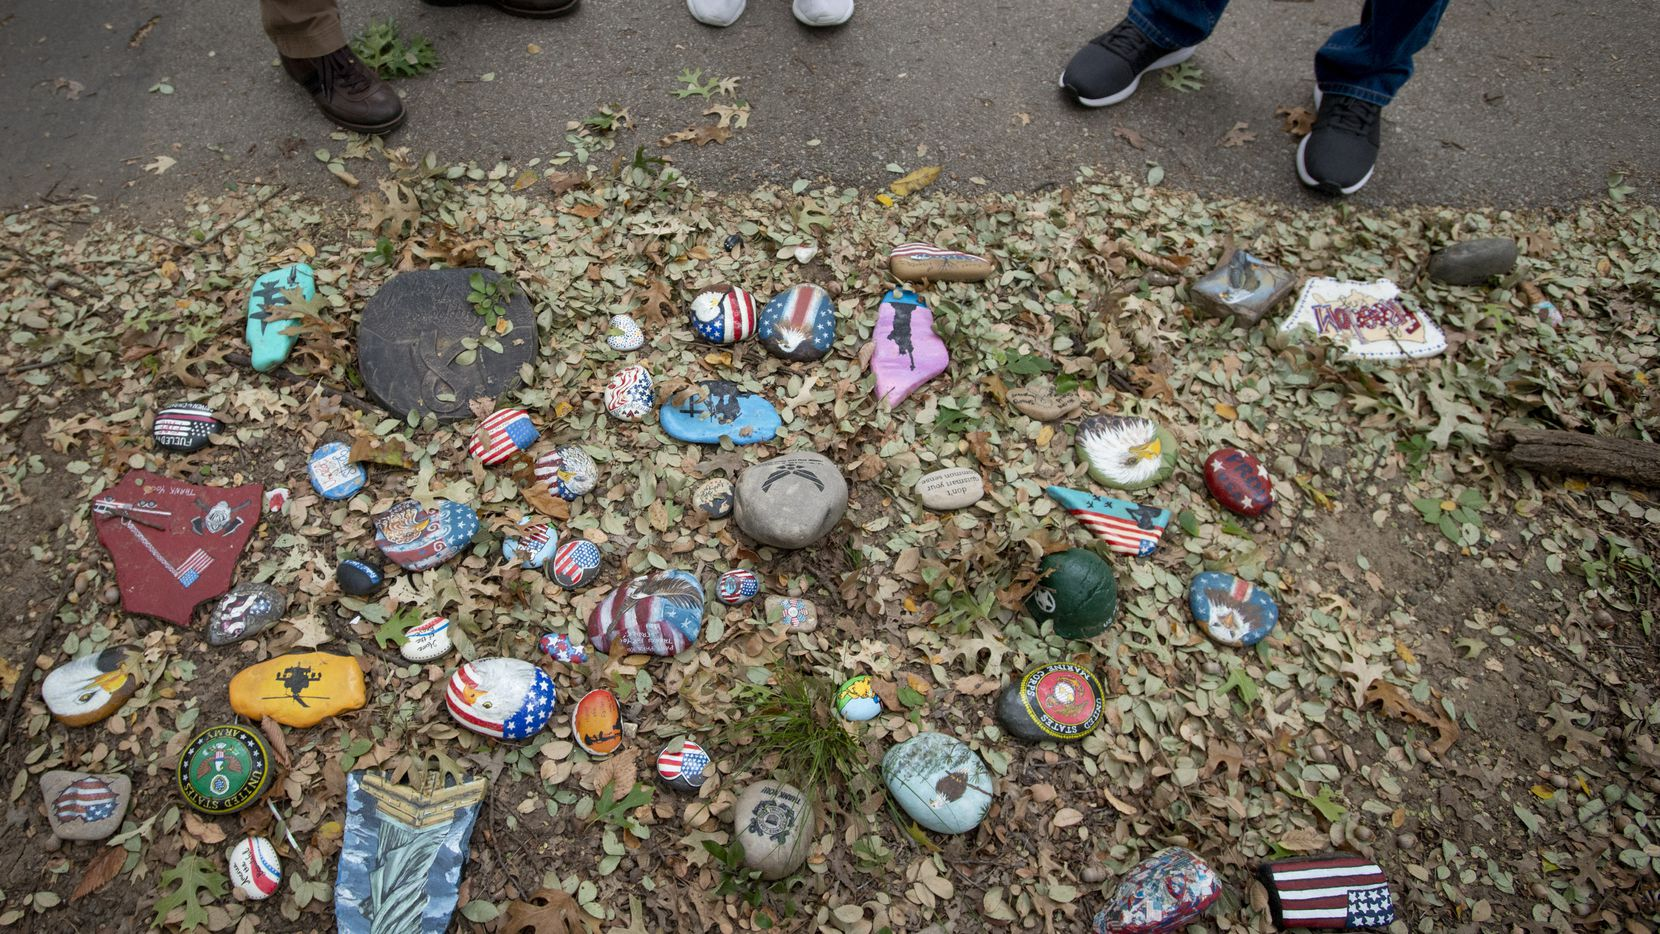 A cluster of rocks devoted to U.S. military branches on the rock art trail at Parr Park in Grapevine, Texas on October 15, 2020.